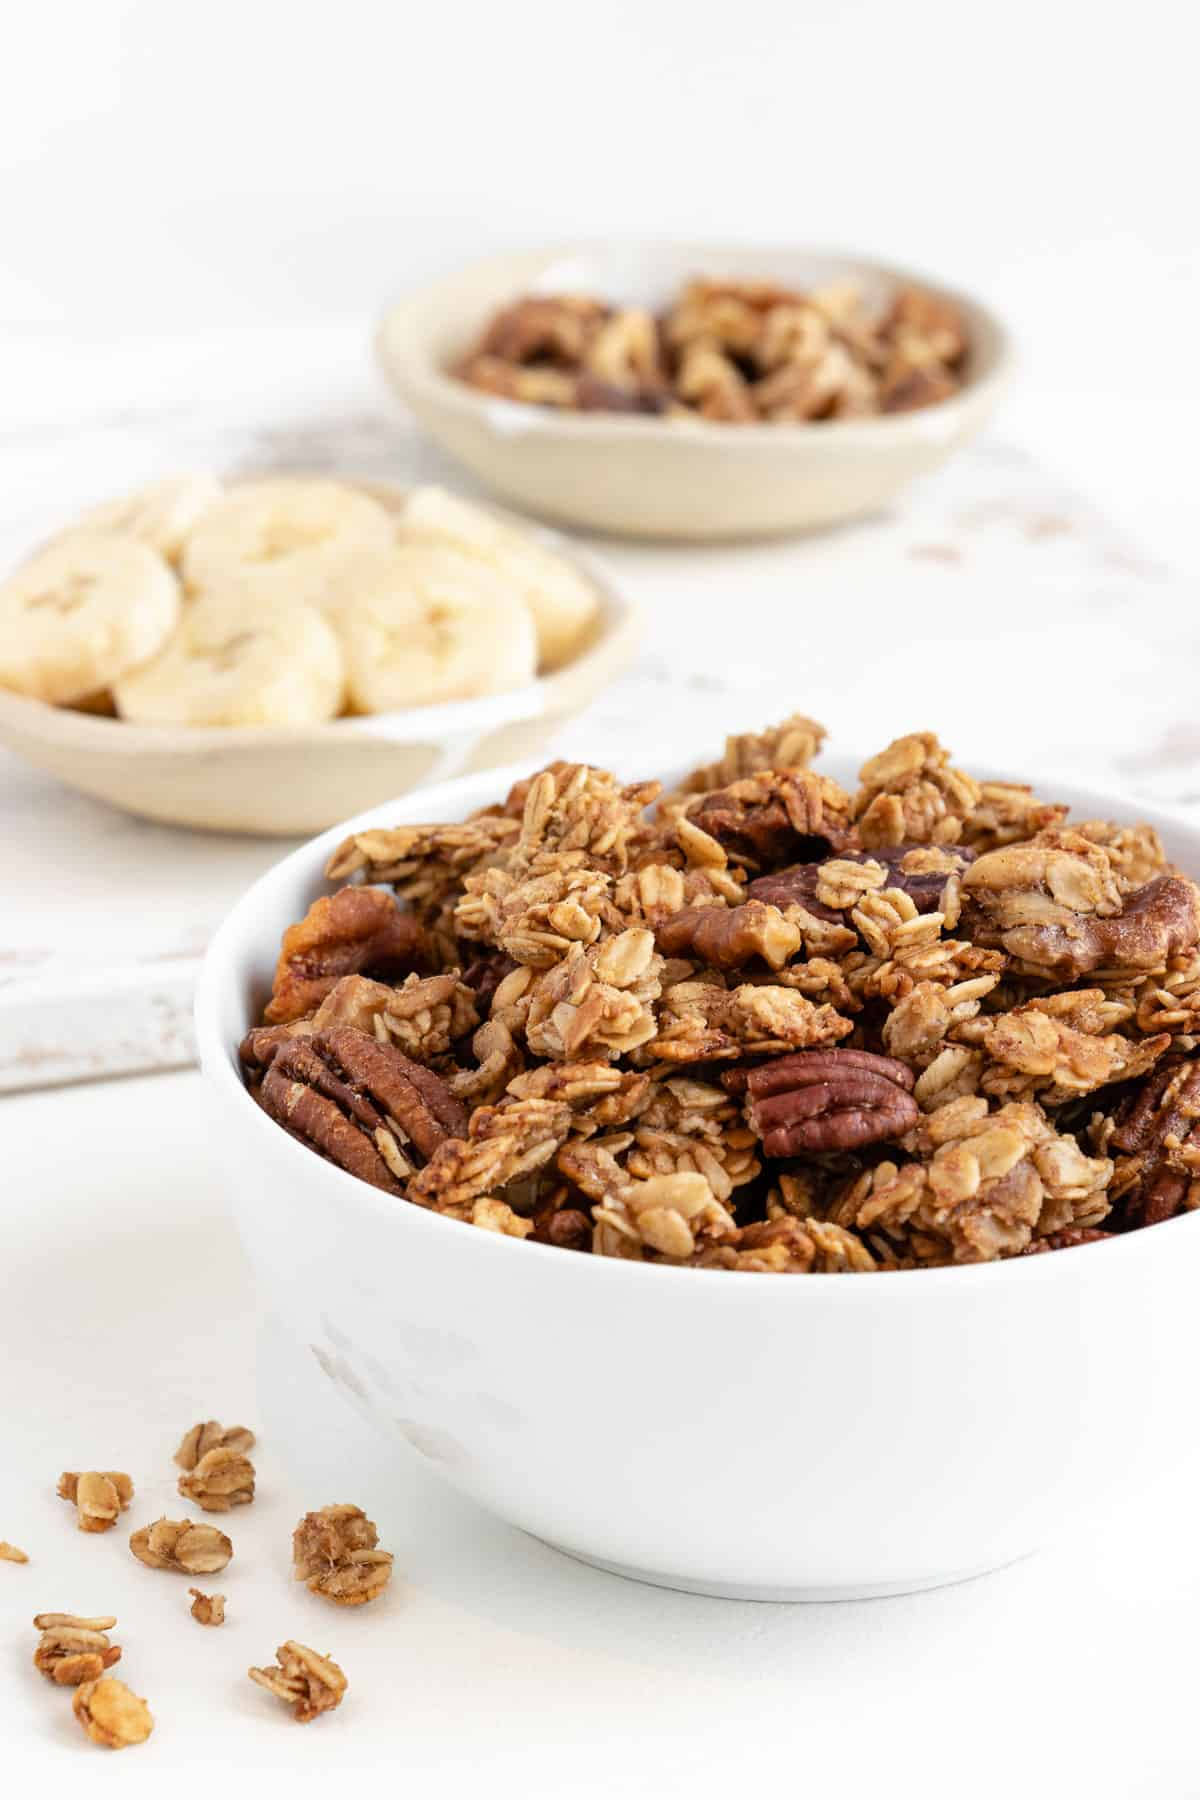 banana bread granola in a white bowl with sliced bananas and walnuts behind it